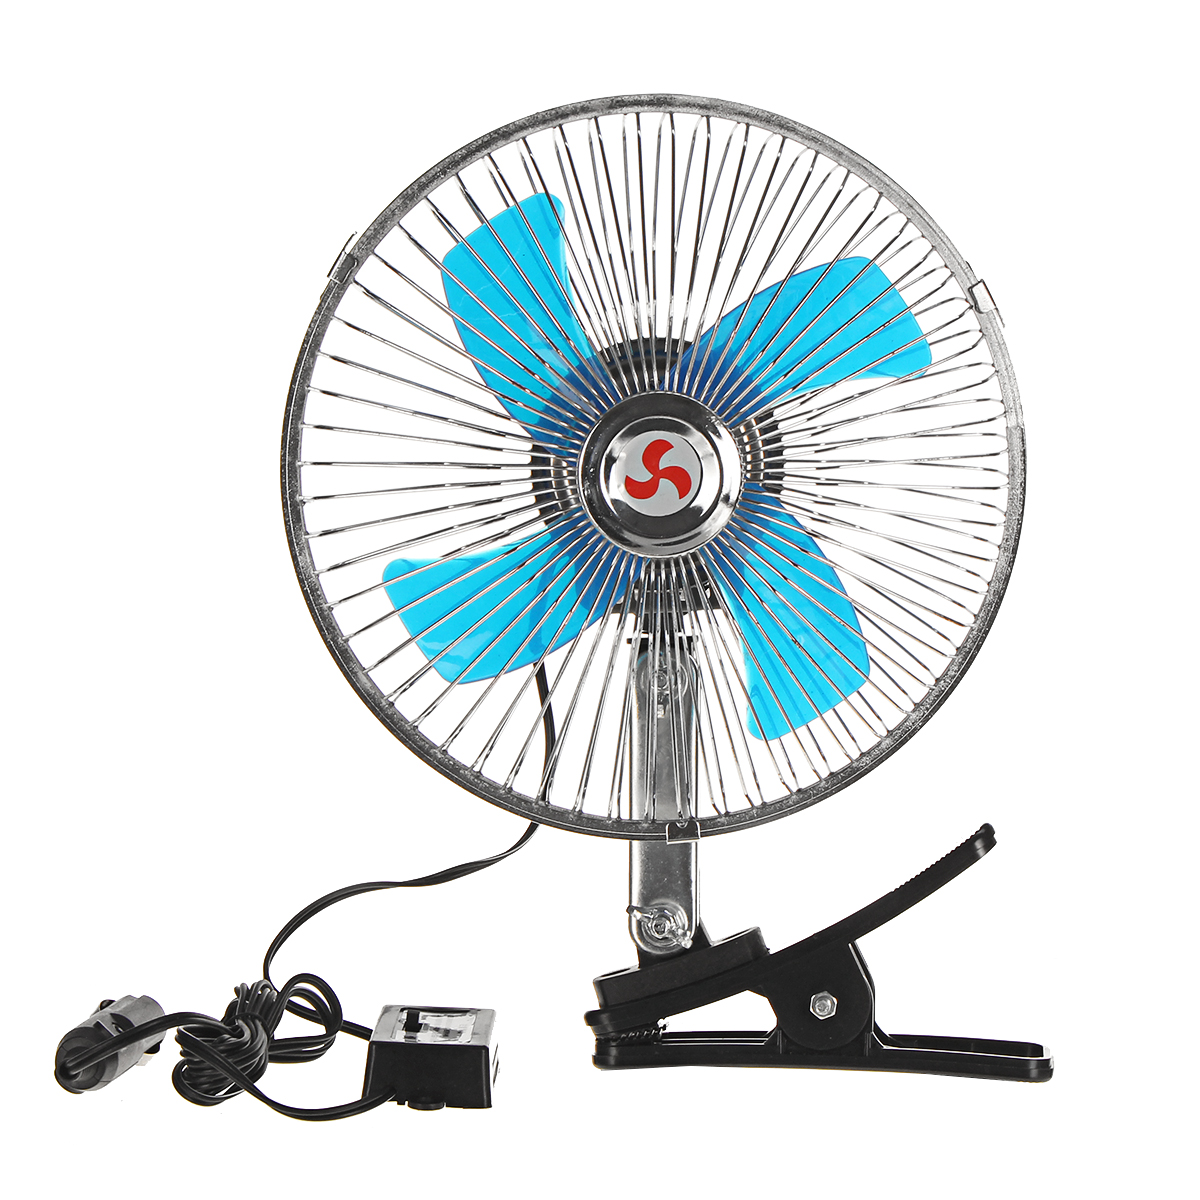 2 In 1 12V Car Clip-on Fan Camping Travel Portable Air Condition